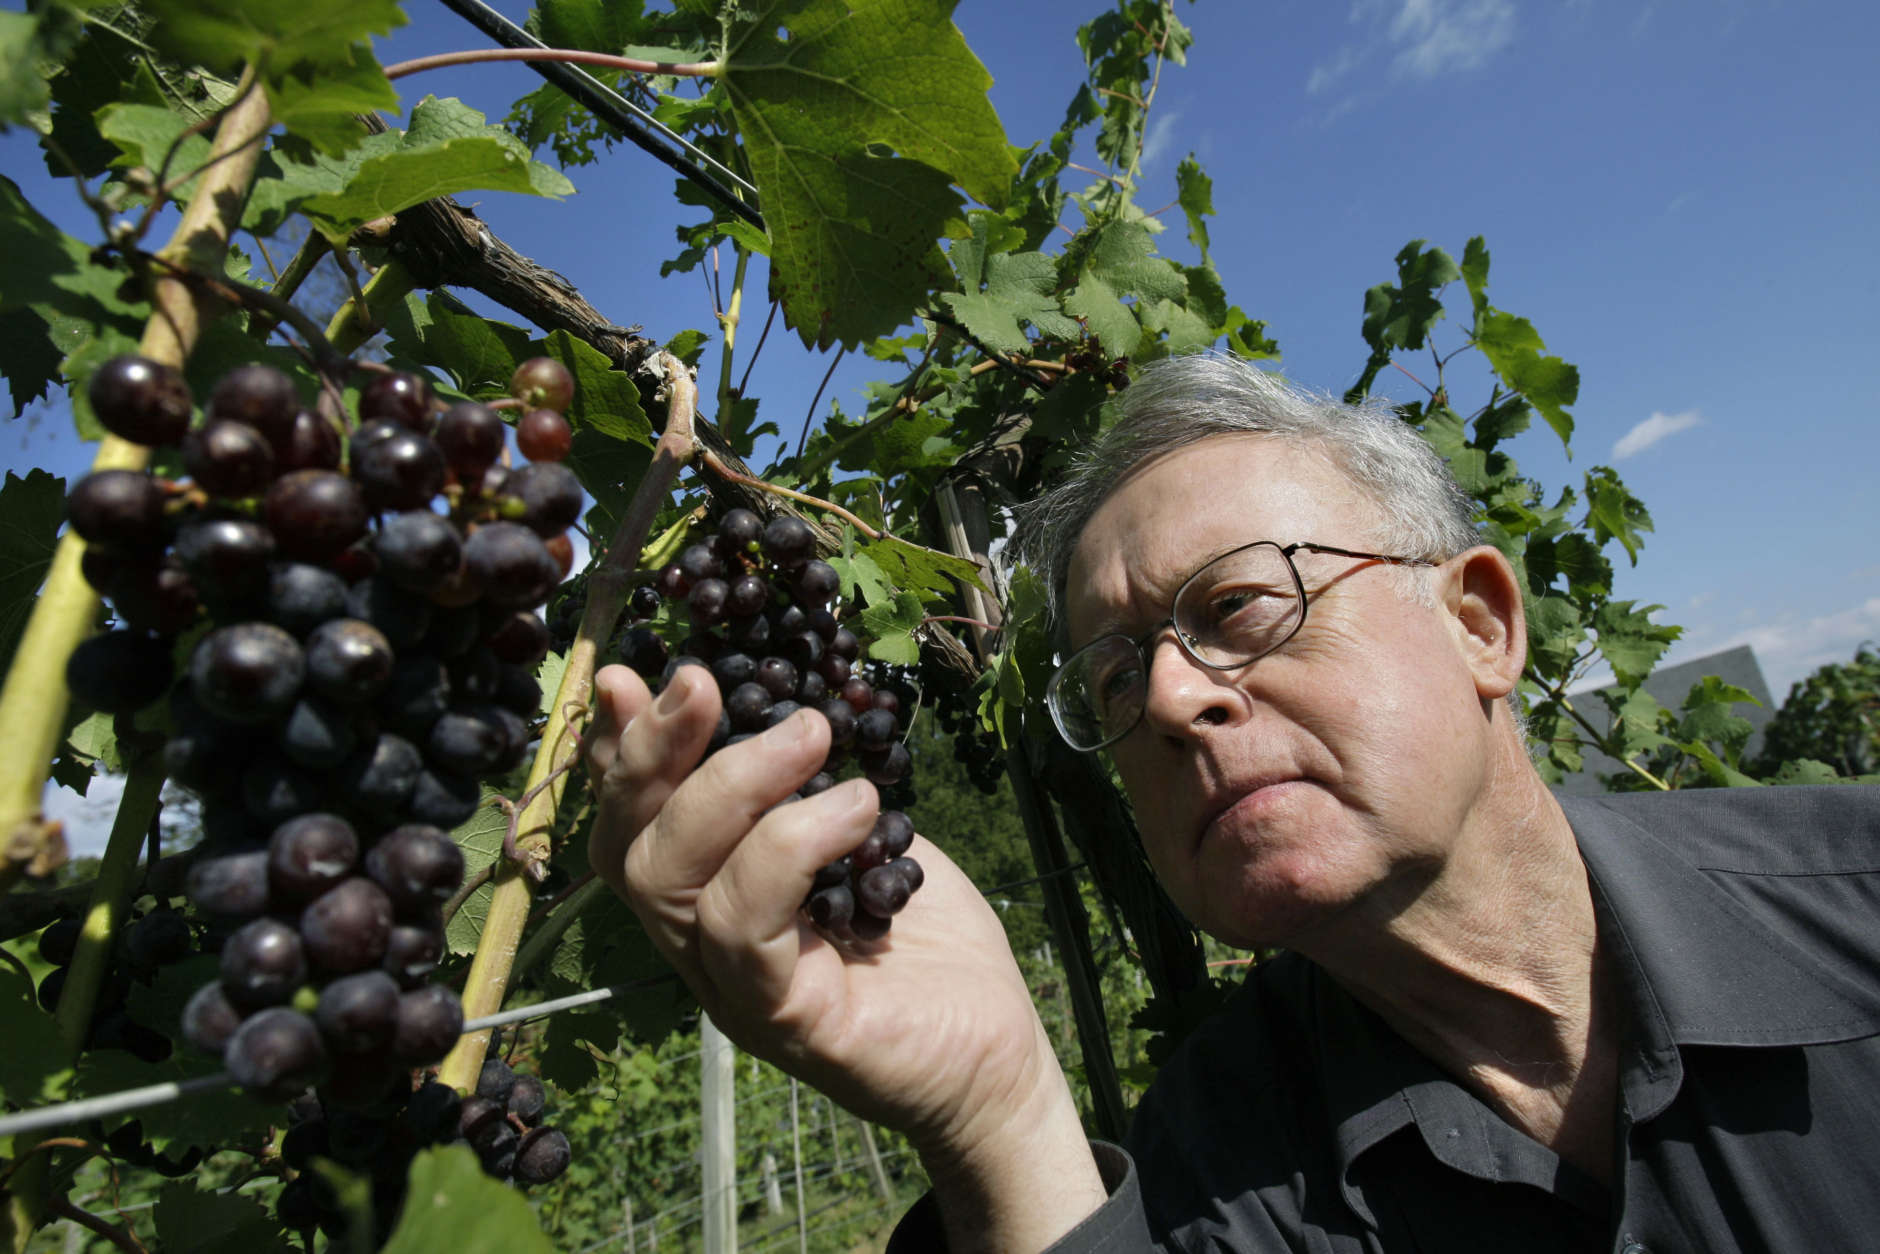 Kip Kumler, owner of Turtle Creek Winery and chairman of the Massachusetts Farm Winery and Growers Association shows Cabernet Franc grapes at his winery in Lincoln, Mass. Friday, Sept. 18, 2009. Kumler and his group, with the support of state agriculture officials, are pushing to change state law to permit wine to be sold at the roughly 200 farmers' markets that are held each week in Massachusetts. (AP Photo/Elise Amendola)